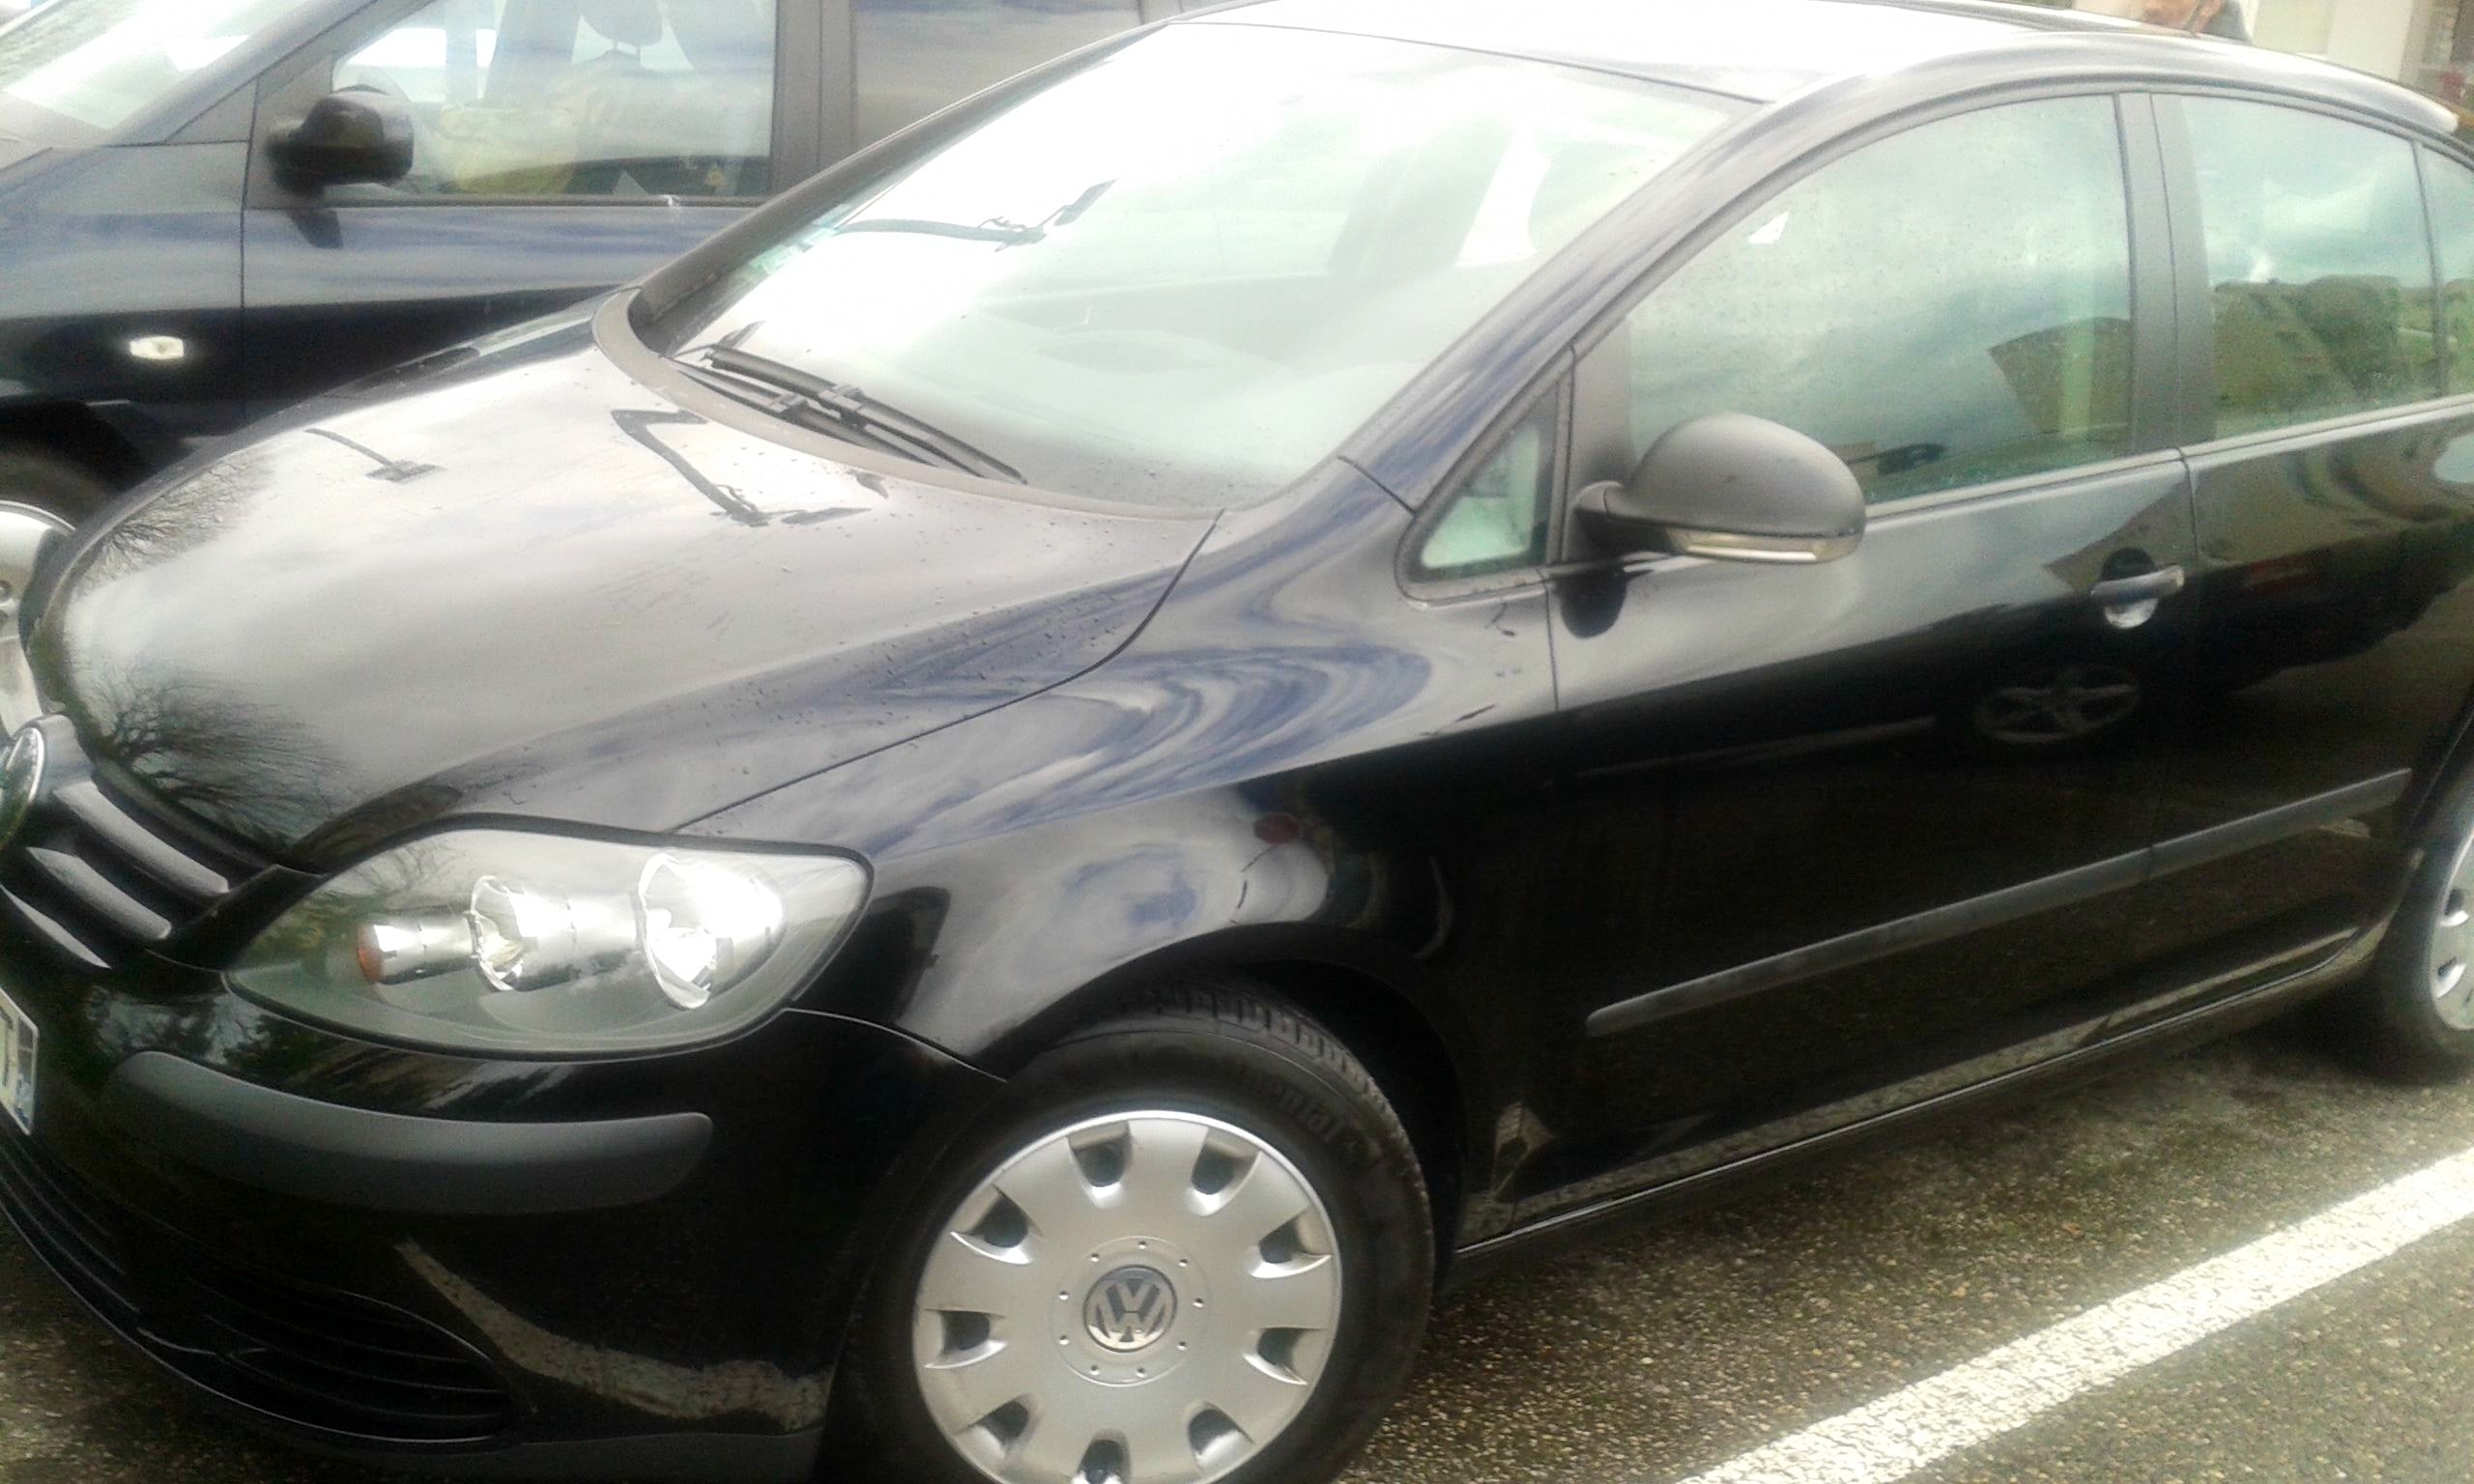 Volkswagen Golf 5 Plus 105ch bluemotion, 2008, Diesel